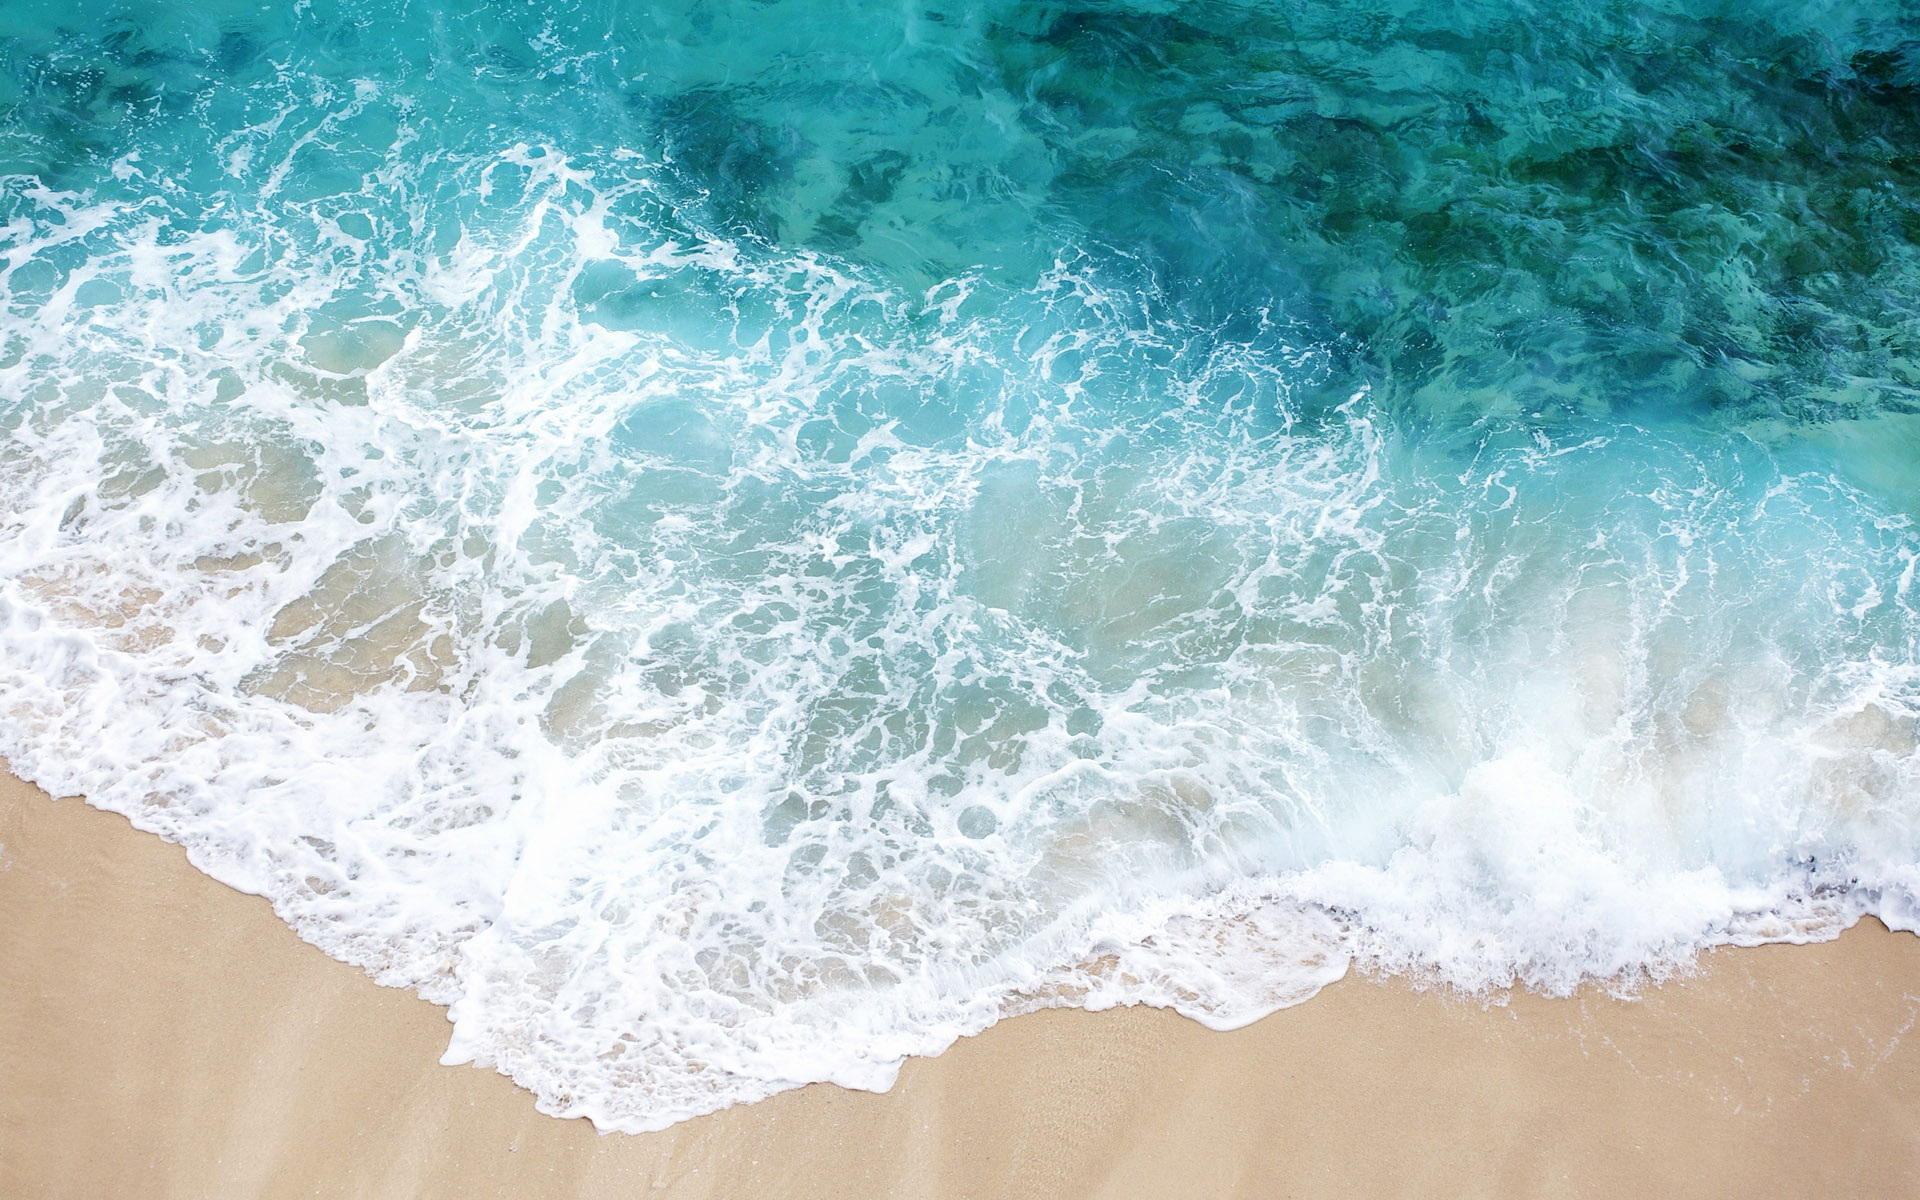 Tumblr Beach Waves Backgrounds 7096 7377 Hd Wallpapers Solid Engineers